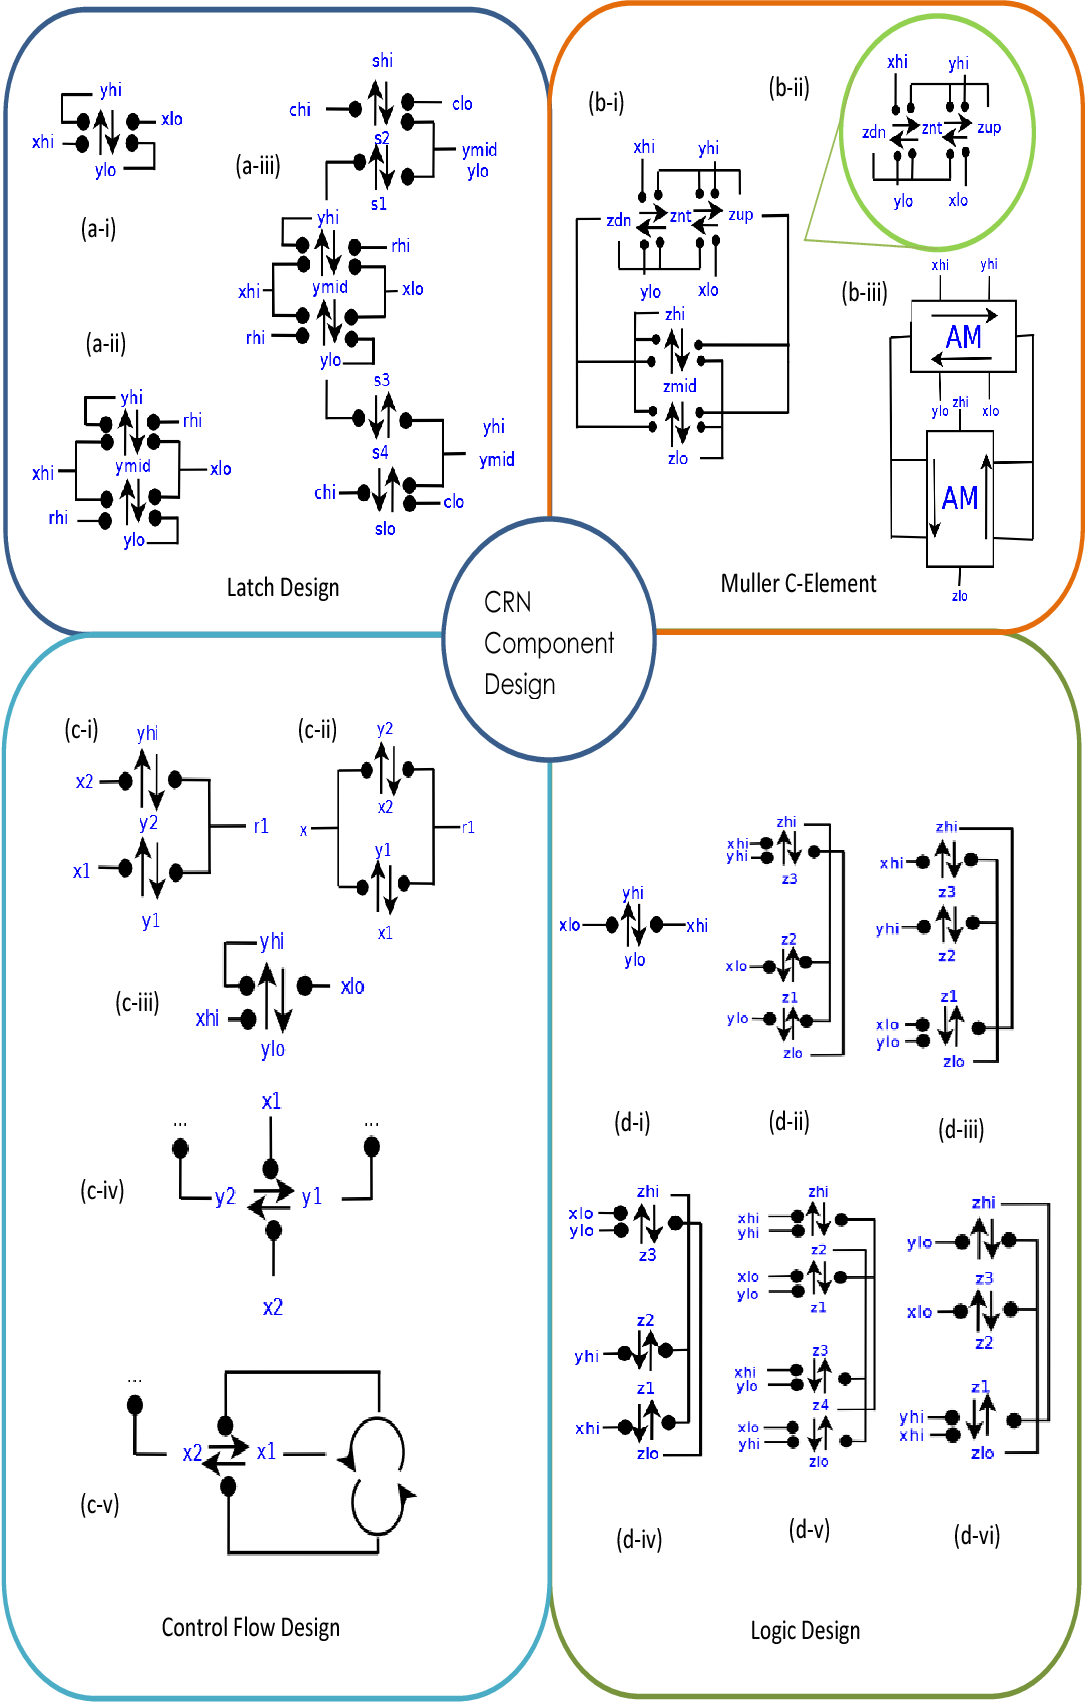 Chemical Reaction Network Designs For Asynchronous Logic Circuits Figure 2